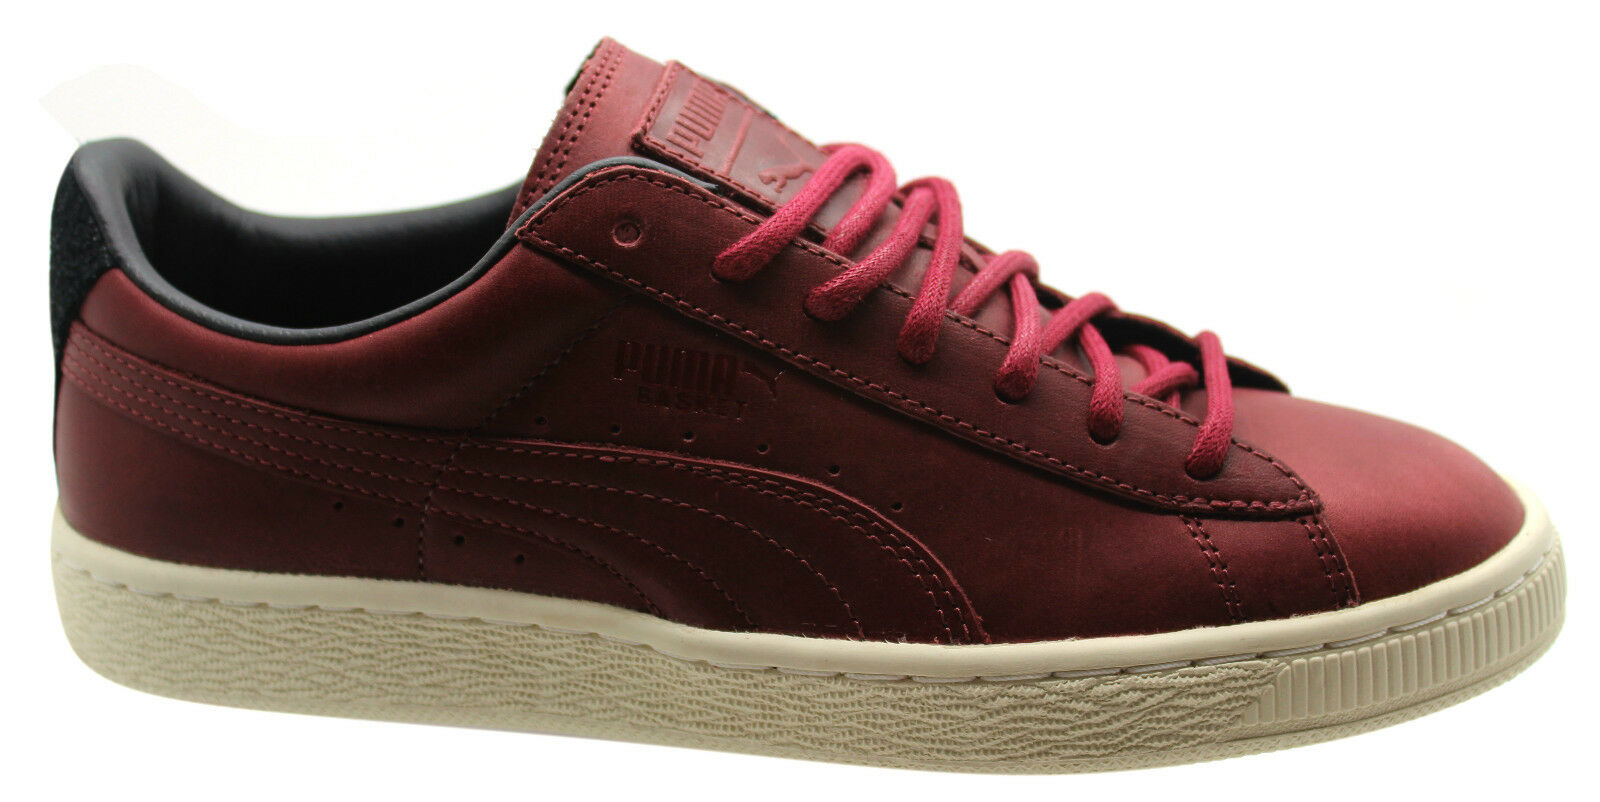 Puma Basket Red Trainers Series Leather Citi Mens Unisex Shoes mn0vN8w